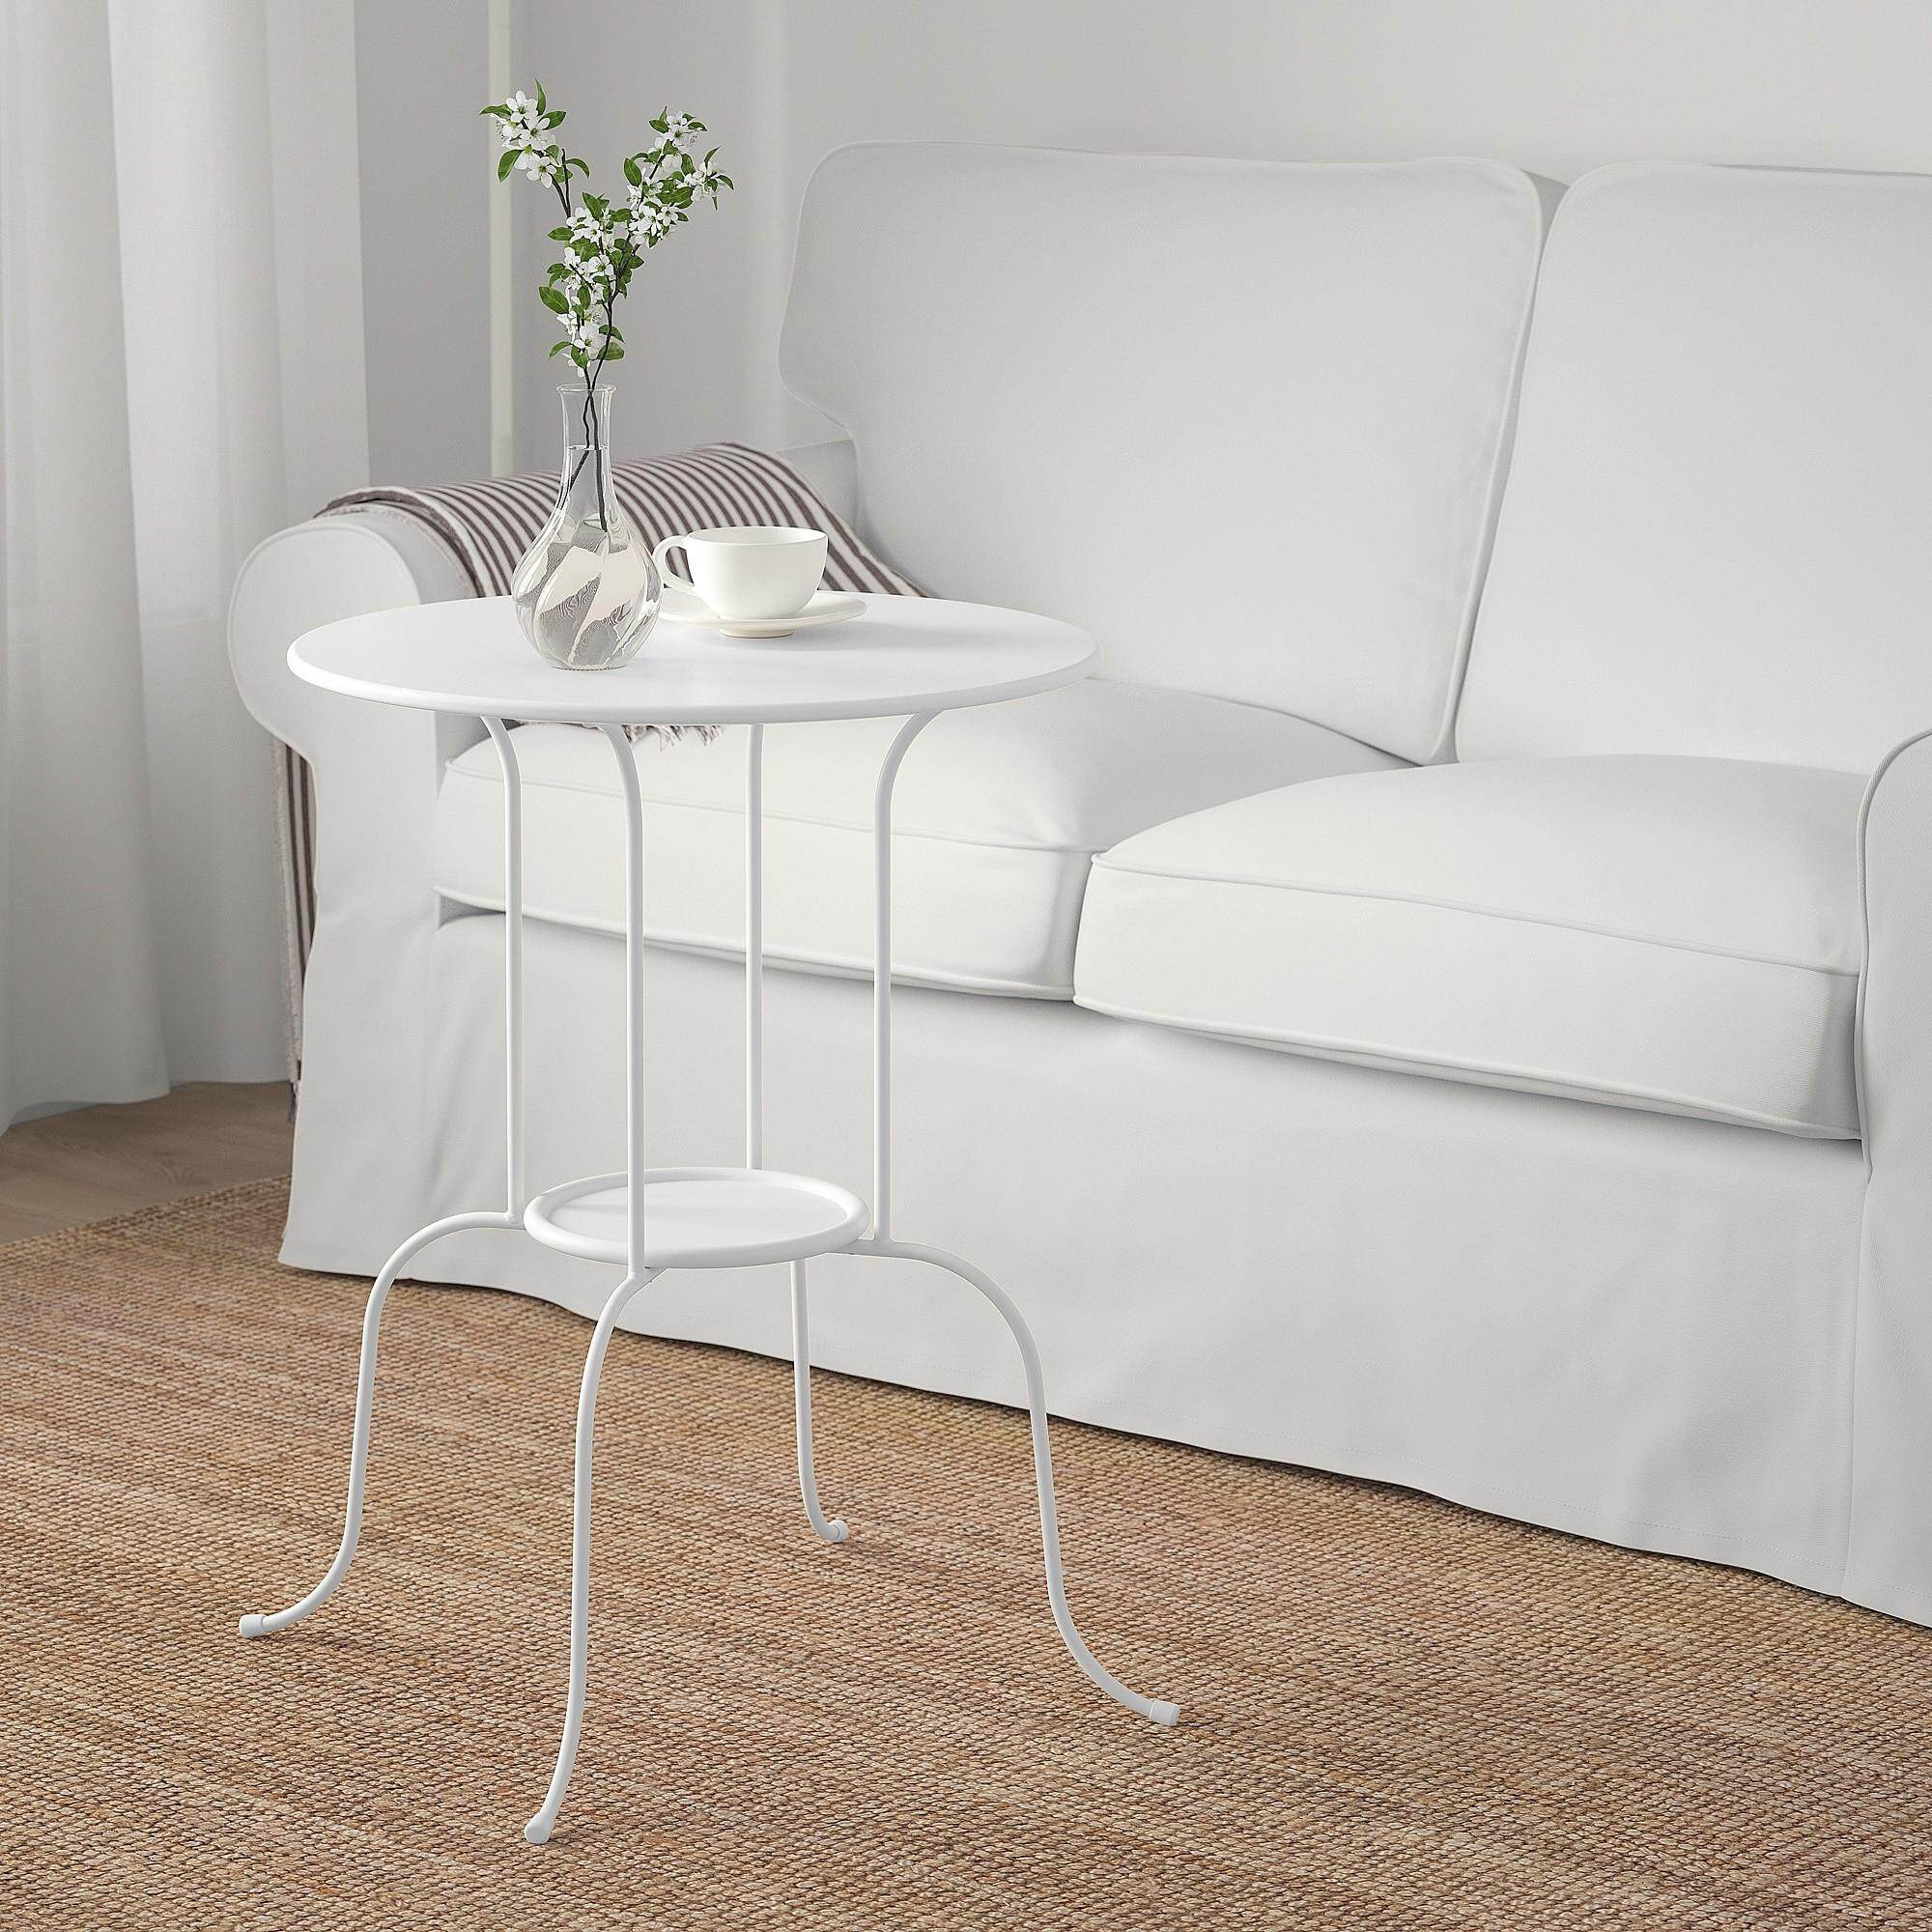 Mk Lindved High Quality Steel Side Table Coffee Table (white) By Mk Motorsport.